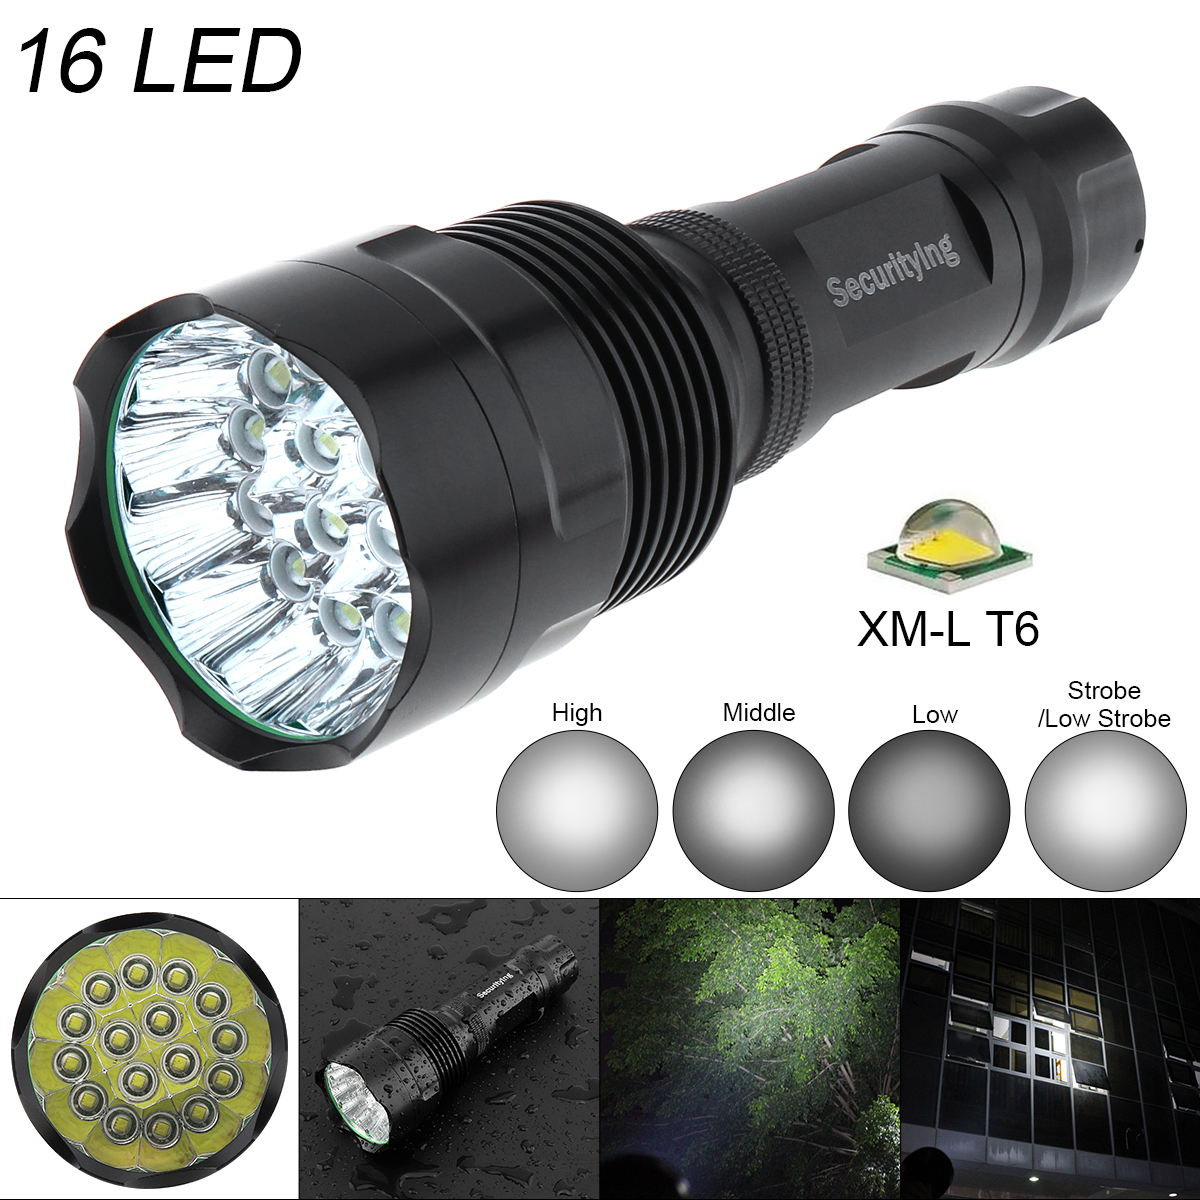 SecurityIng Waterproof Flashlight Super Bright 16x LED 5400 Lumens Torch with 5 Modes Lamp Support 18650 Rechargeable Battery in LED Flashlights from Lights Lighting